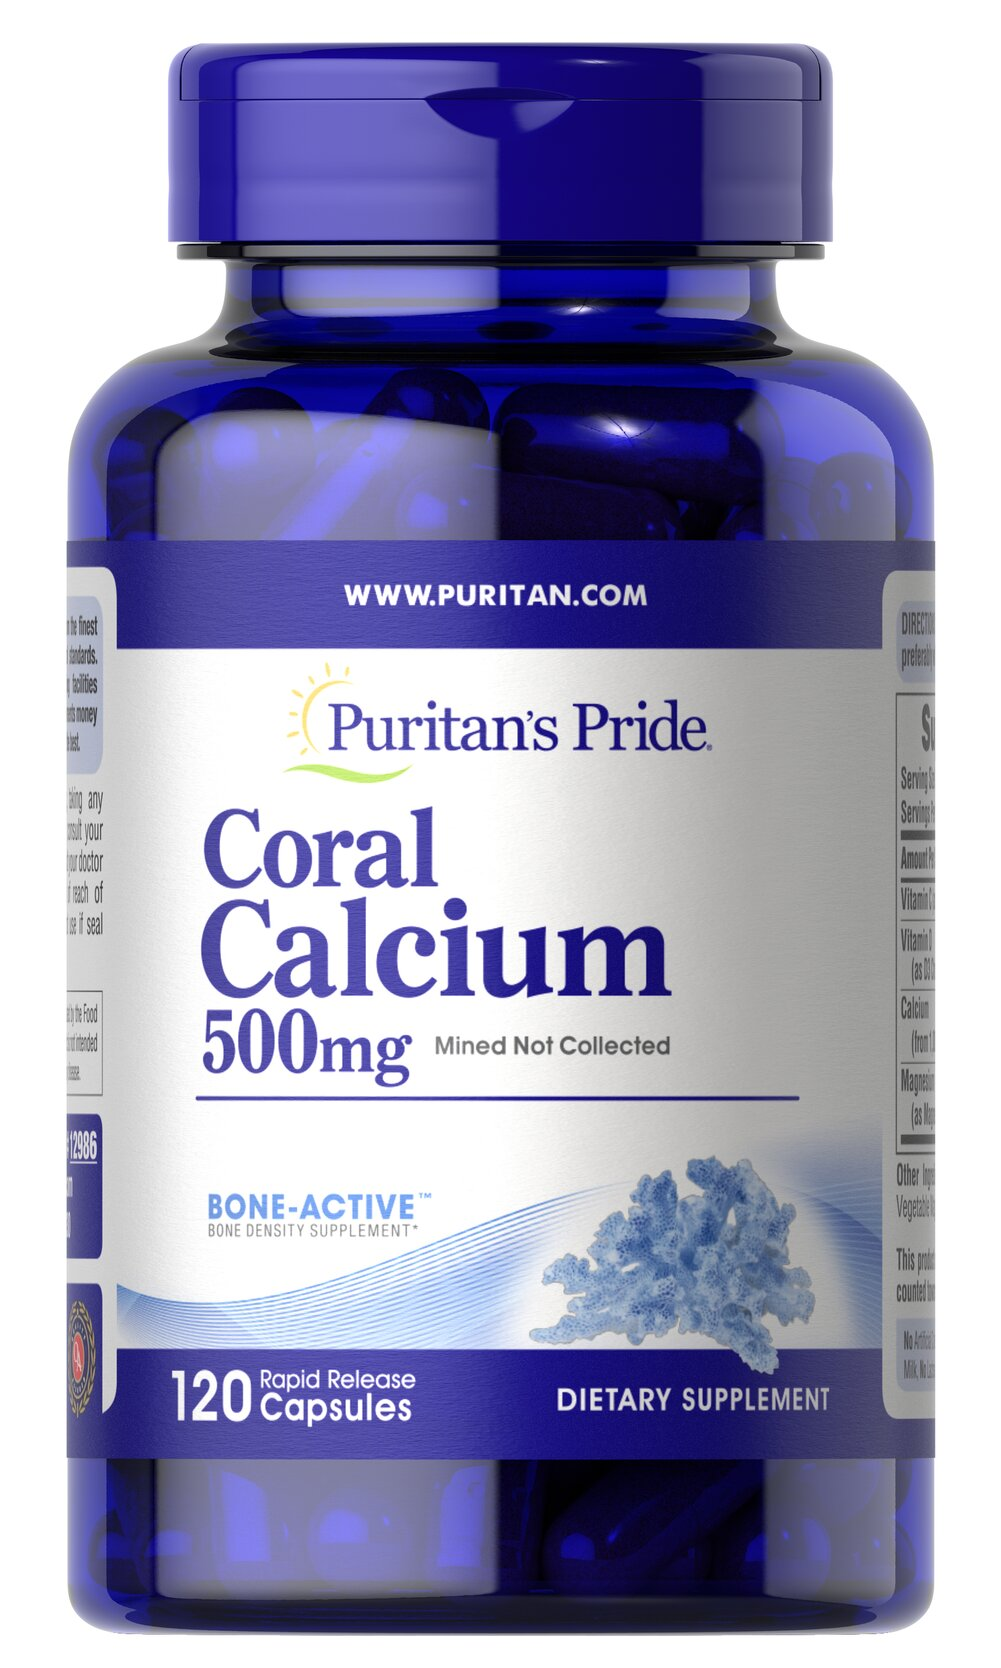 Coral Calcium Complex <p>Today's modern farming and food processing methods can often deplete valuable minerals from our diet. Our Coral Calcium formulation includes Coral Calcium, Magnesium and Vitamin C for bone health, plus Vitamin D to aid in Calcium absorption.** The Coral Calcium in this product is mined, not collected, from an above ground source making it environmentally friendly.</p> 120 Capsules  $14.99